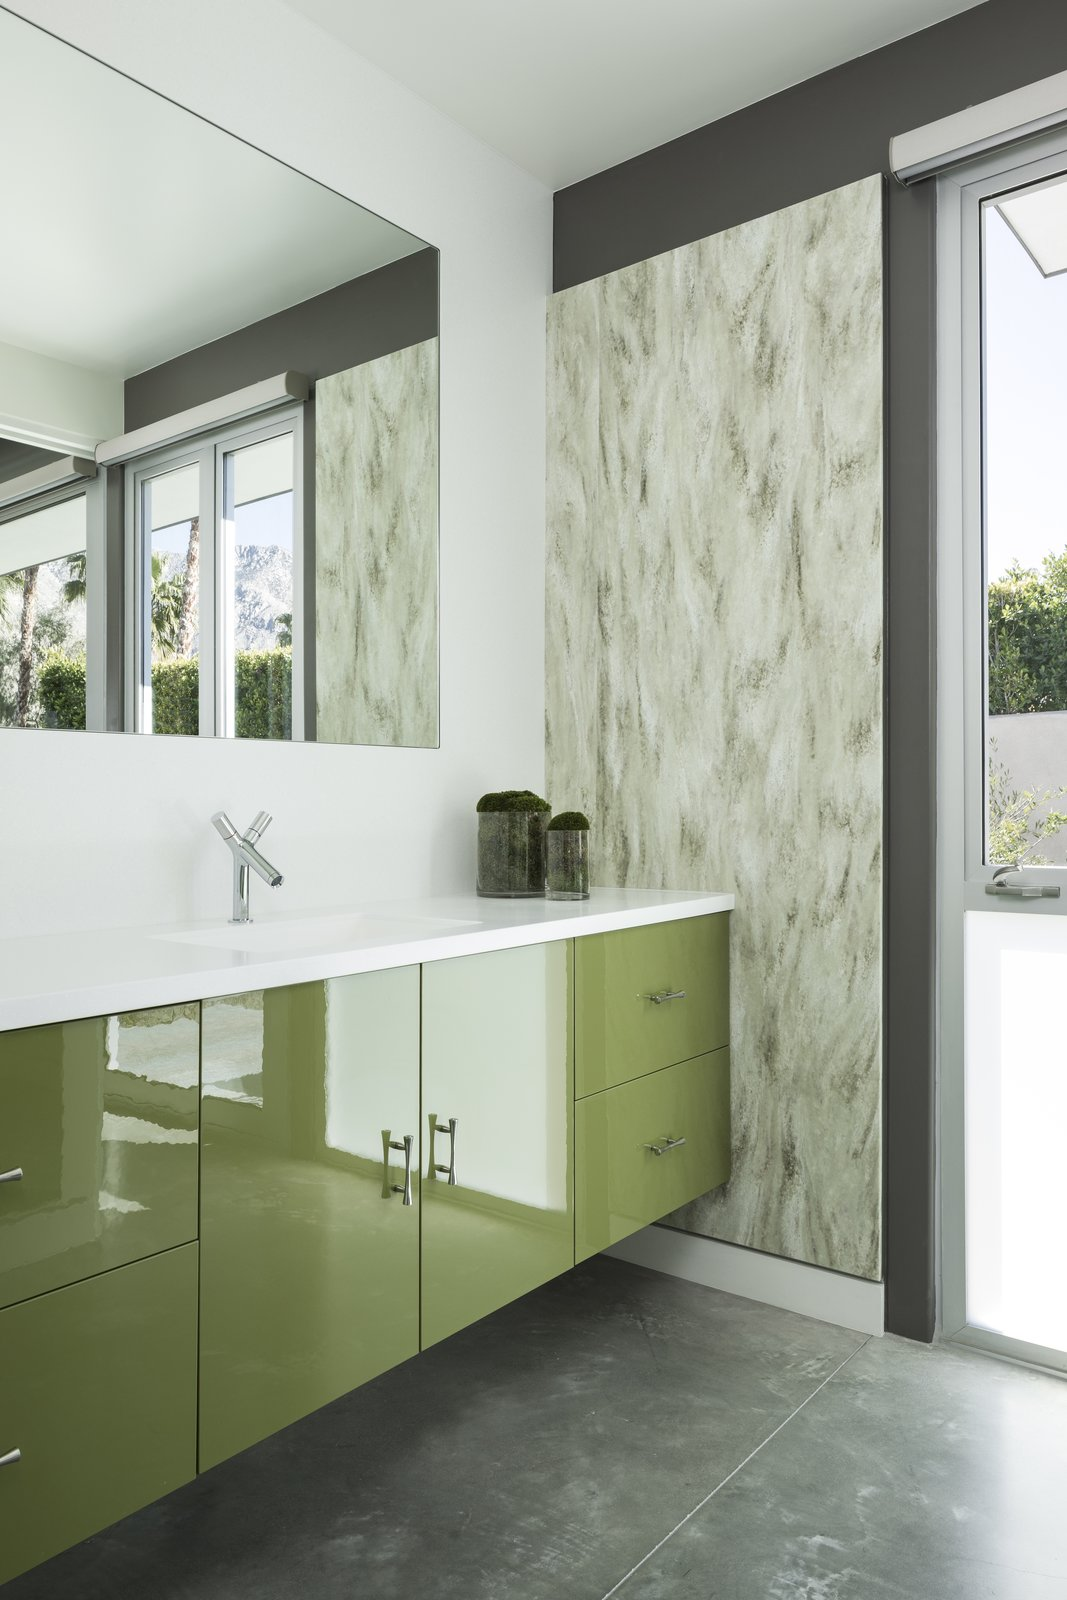 Glossy green cabinets, textured wall coverings, and polished concrete floors, in dessert hues, decorate one of the guest baths.